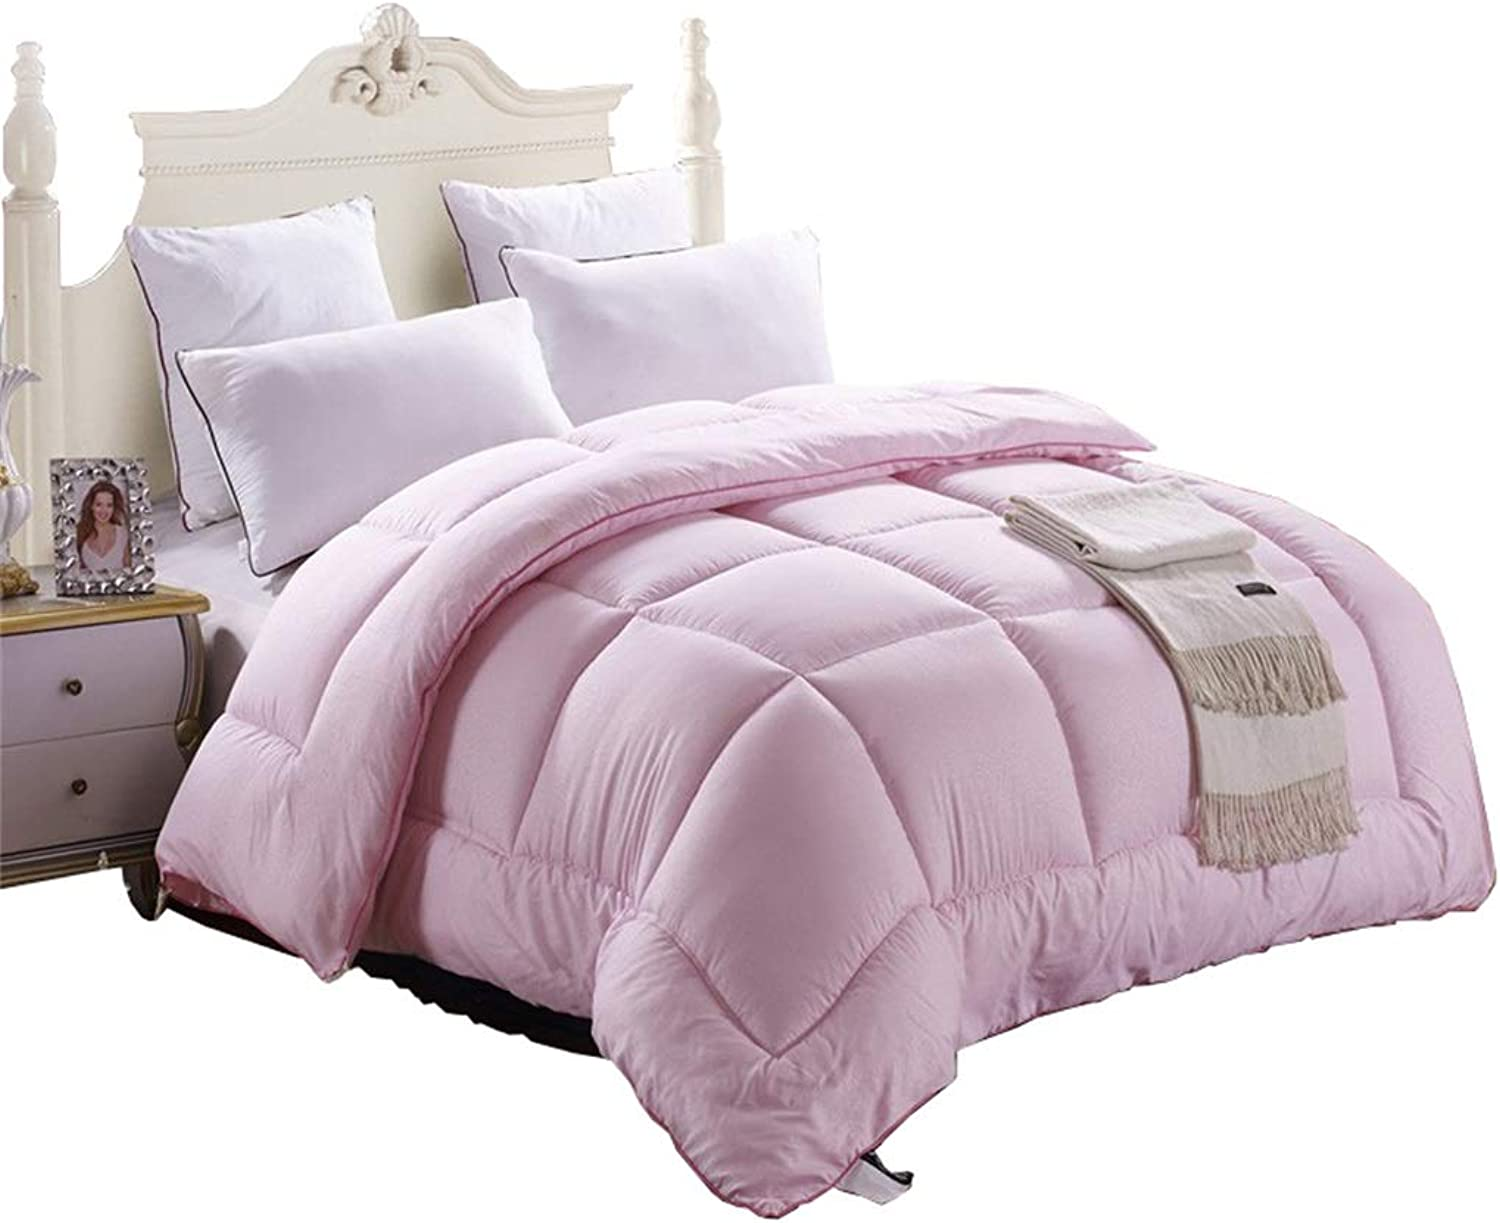 Warm Quilt Luxury Duvet Winter Thicken Keep Warm Single Double Bedding - Pink Quilt Home Student Dormitory - All Cotton Fabric Quilting Quilt Antiallergic Quilt (Size   150  200cm 2.5kg)